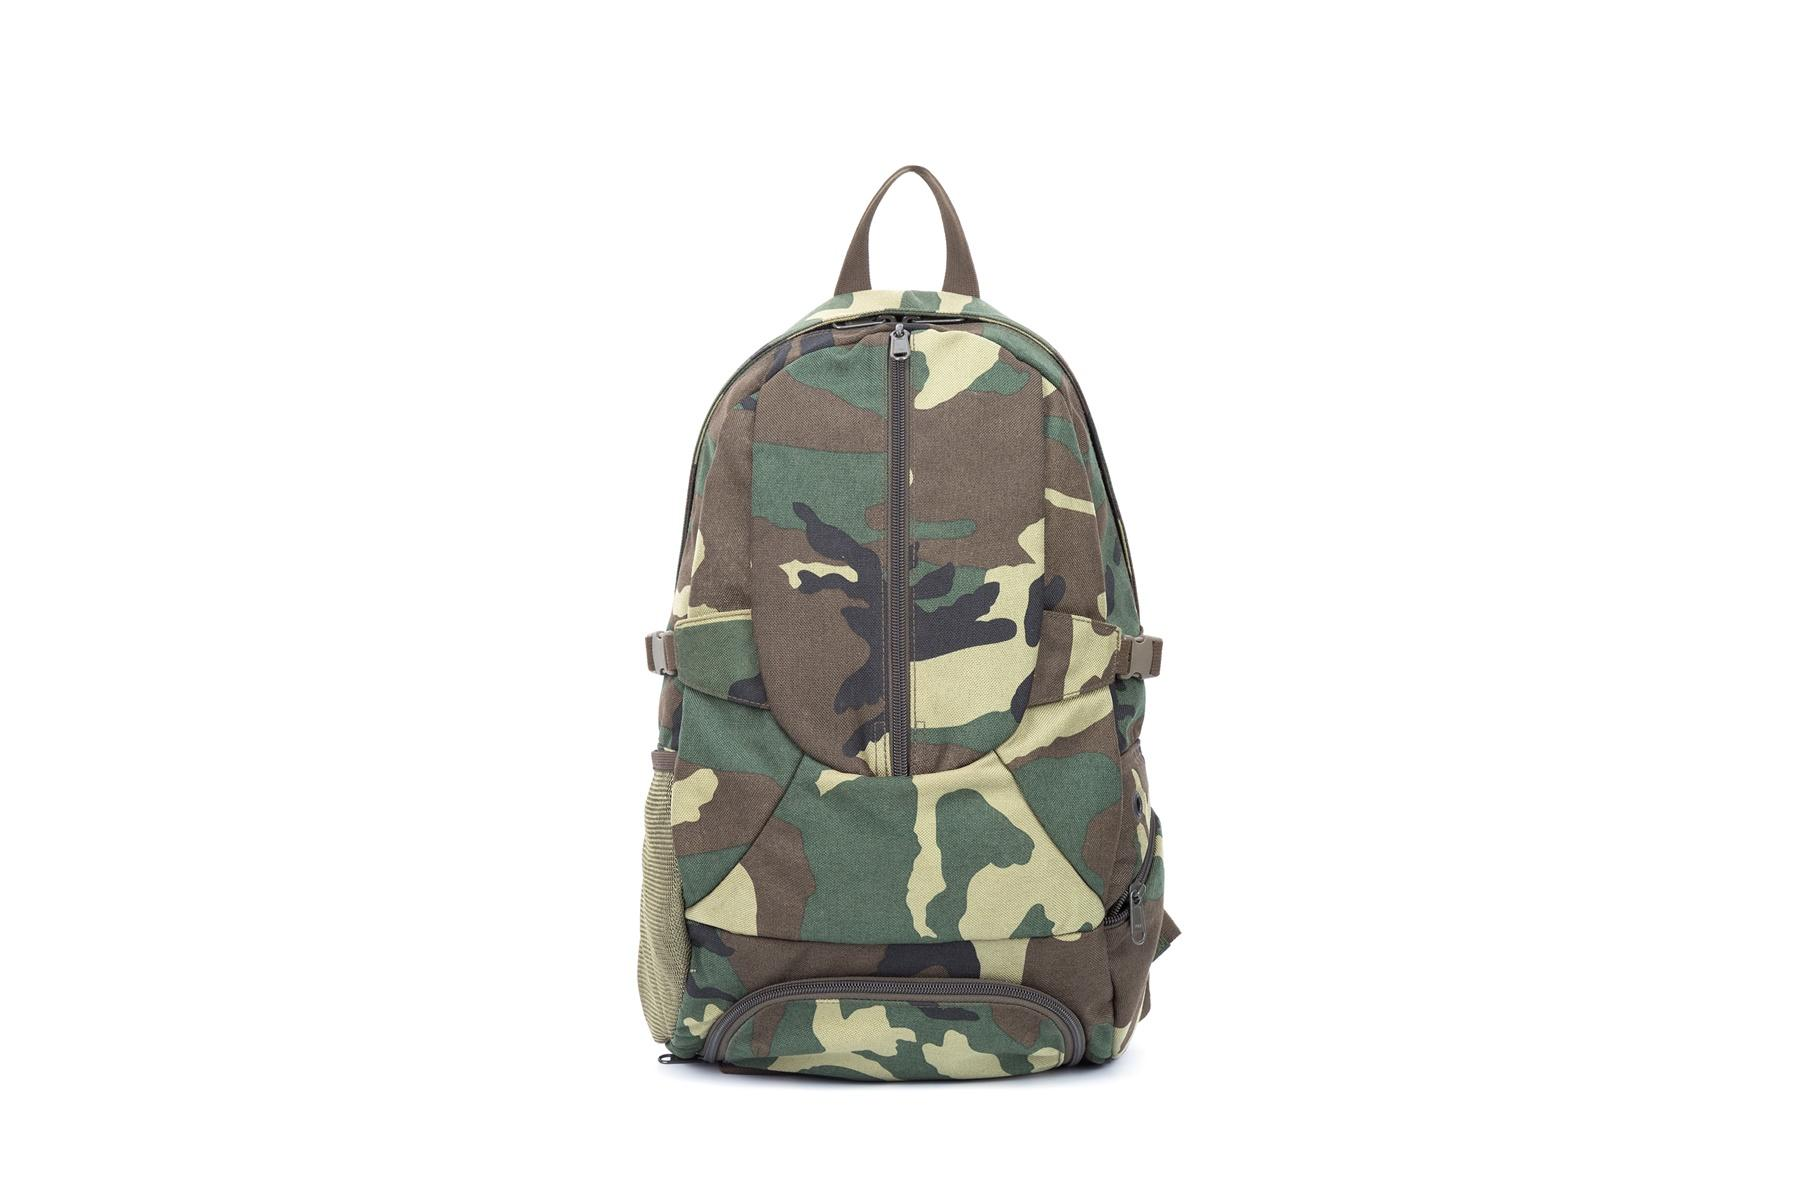 Military backpack nylon fabric with zipper closure